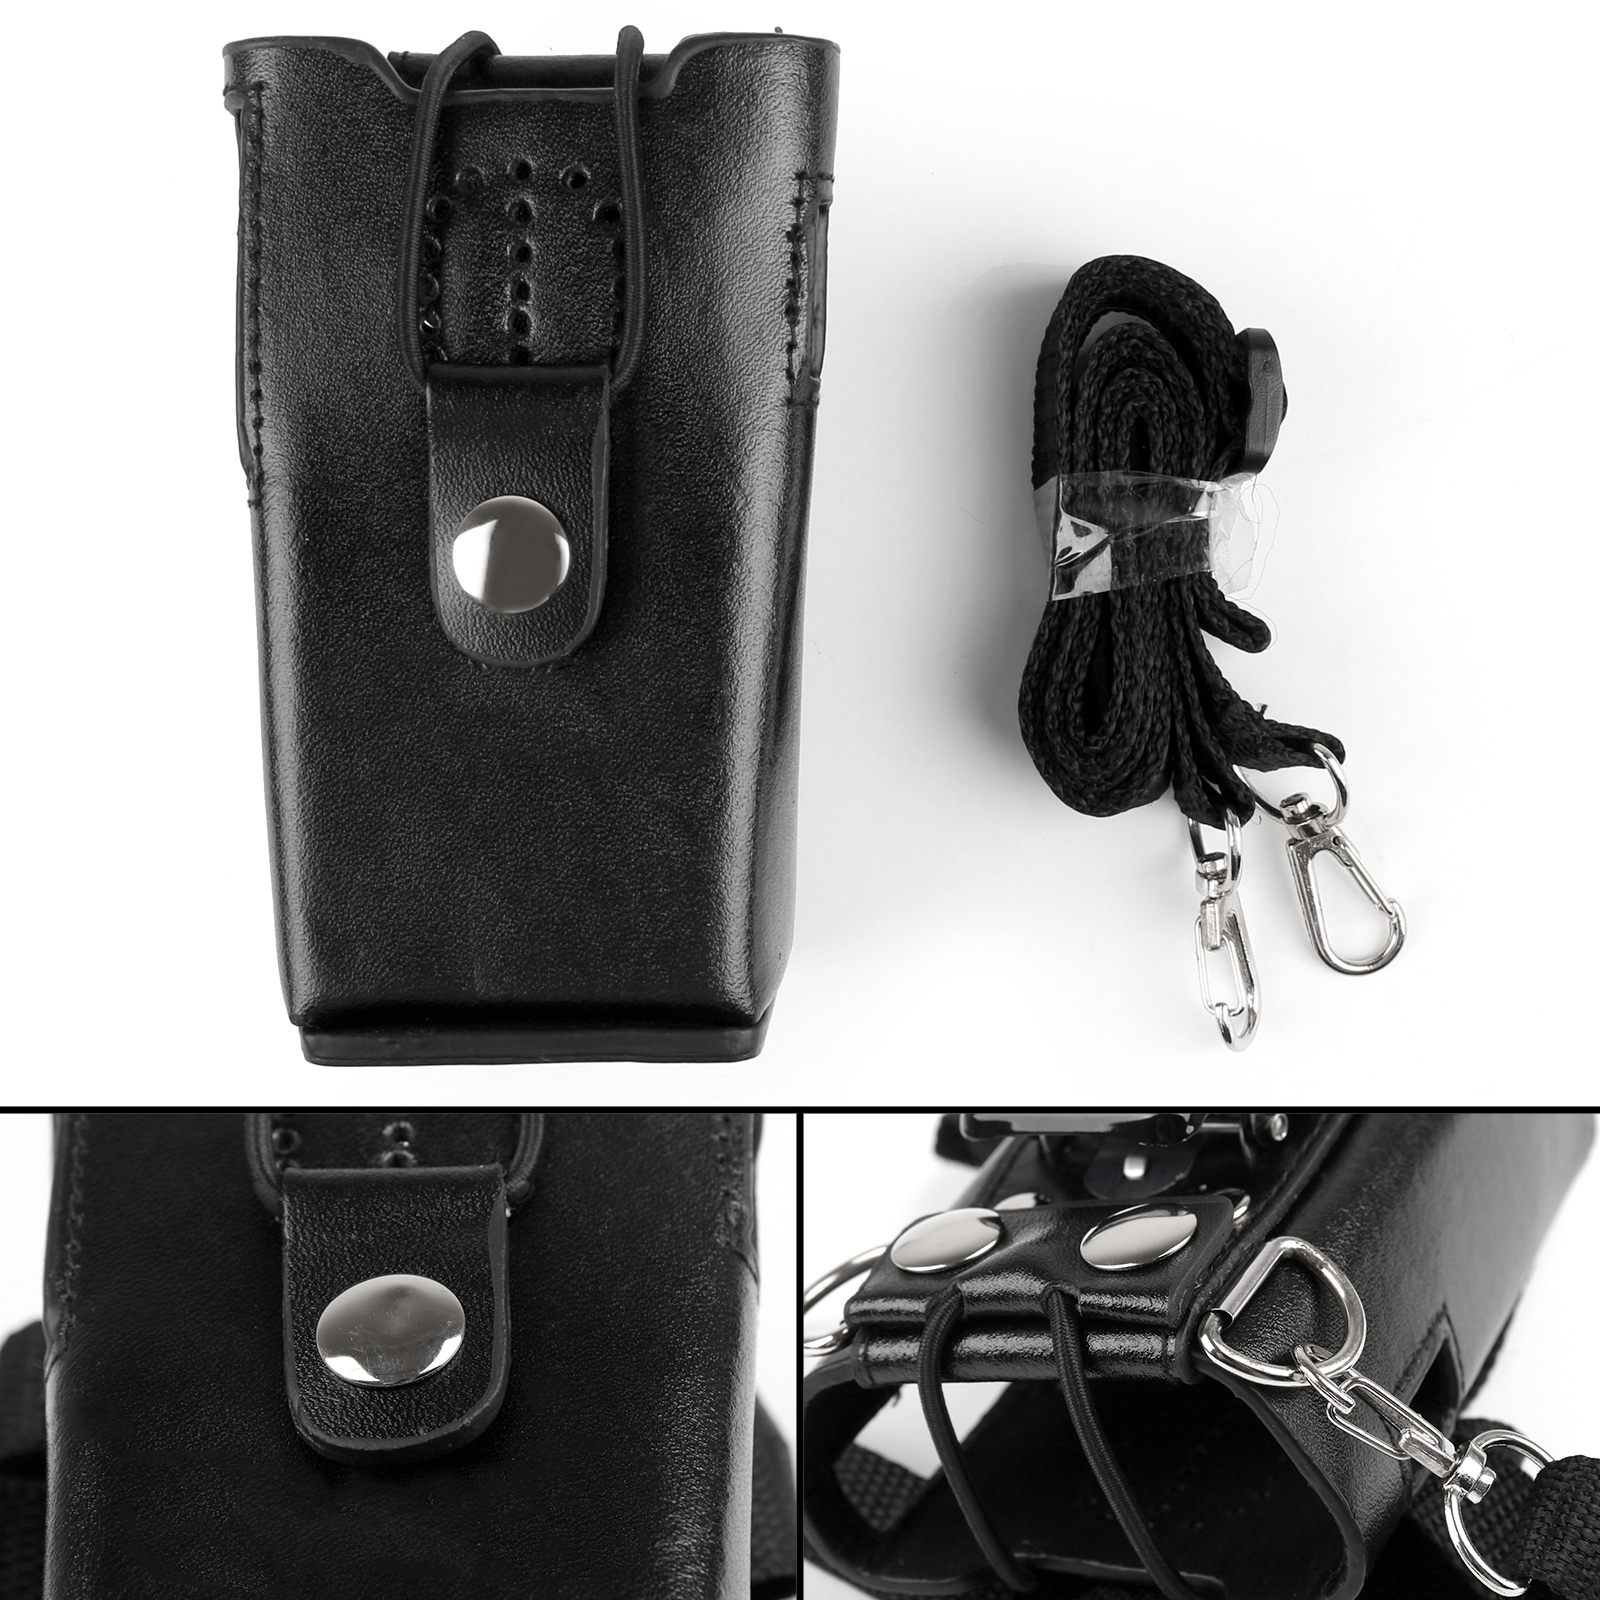 Artudatech Leather Holder Case For Kenwood <font><b>TK</b></font>-2100 <font><b>TK</b></font>-2107 <font><b>TK</b></font>-3100 <font><b>TK</b></font>-<font><b>3107</b></font> 2-Way Radio <font><b>TK</b></font> 2100 2107 3100 <font><b>3107</b></font> Accessories image